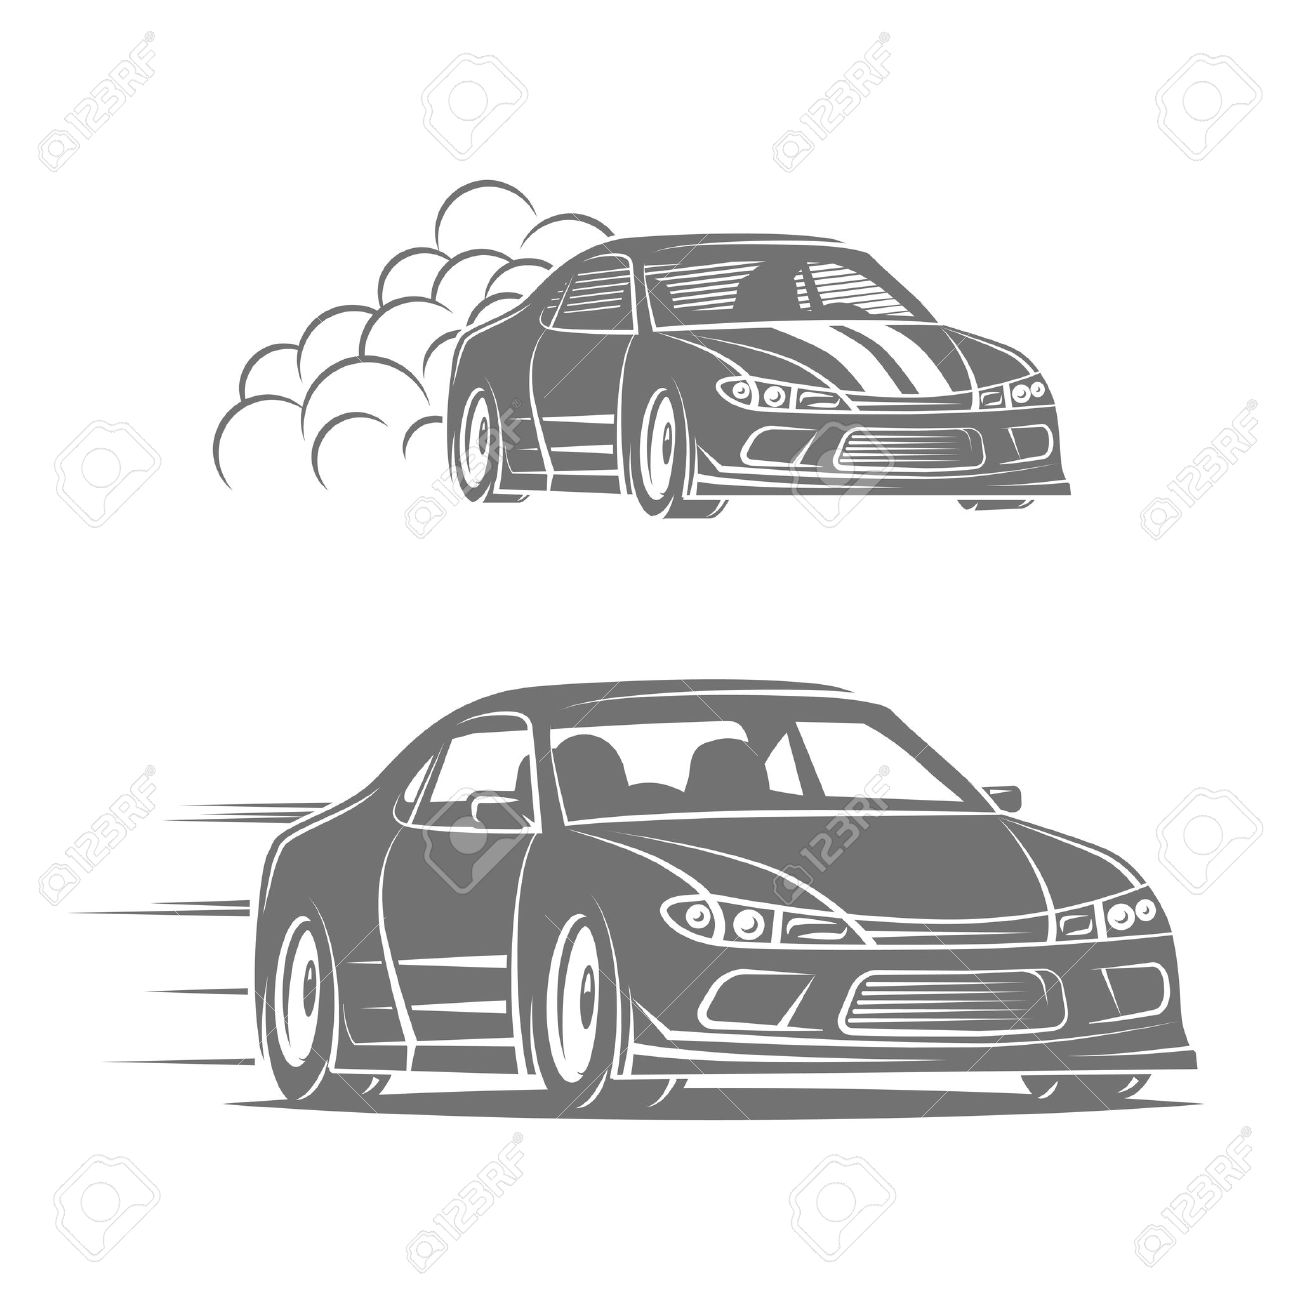 Sport Car Icon Design Street Racing Illustration Drift Show Royalty Free Cliparts Vectors And Stock Illustration Image 43939028